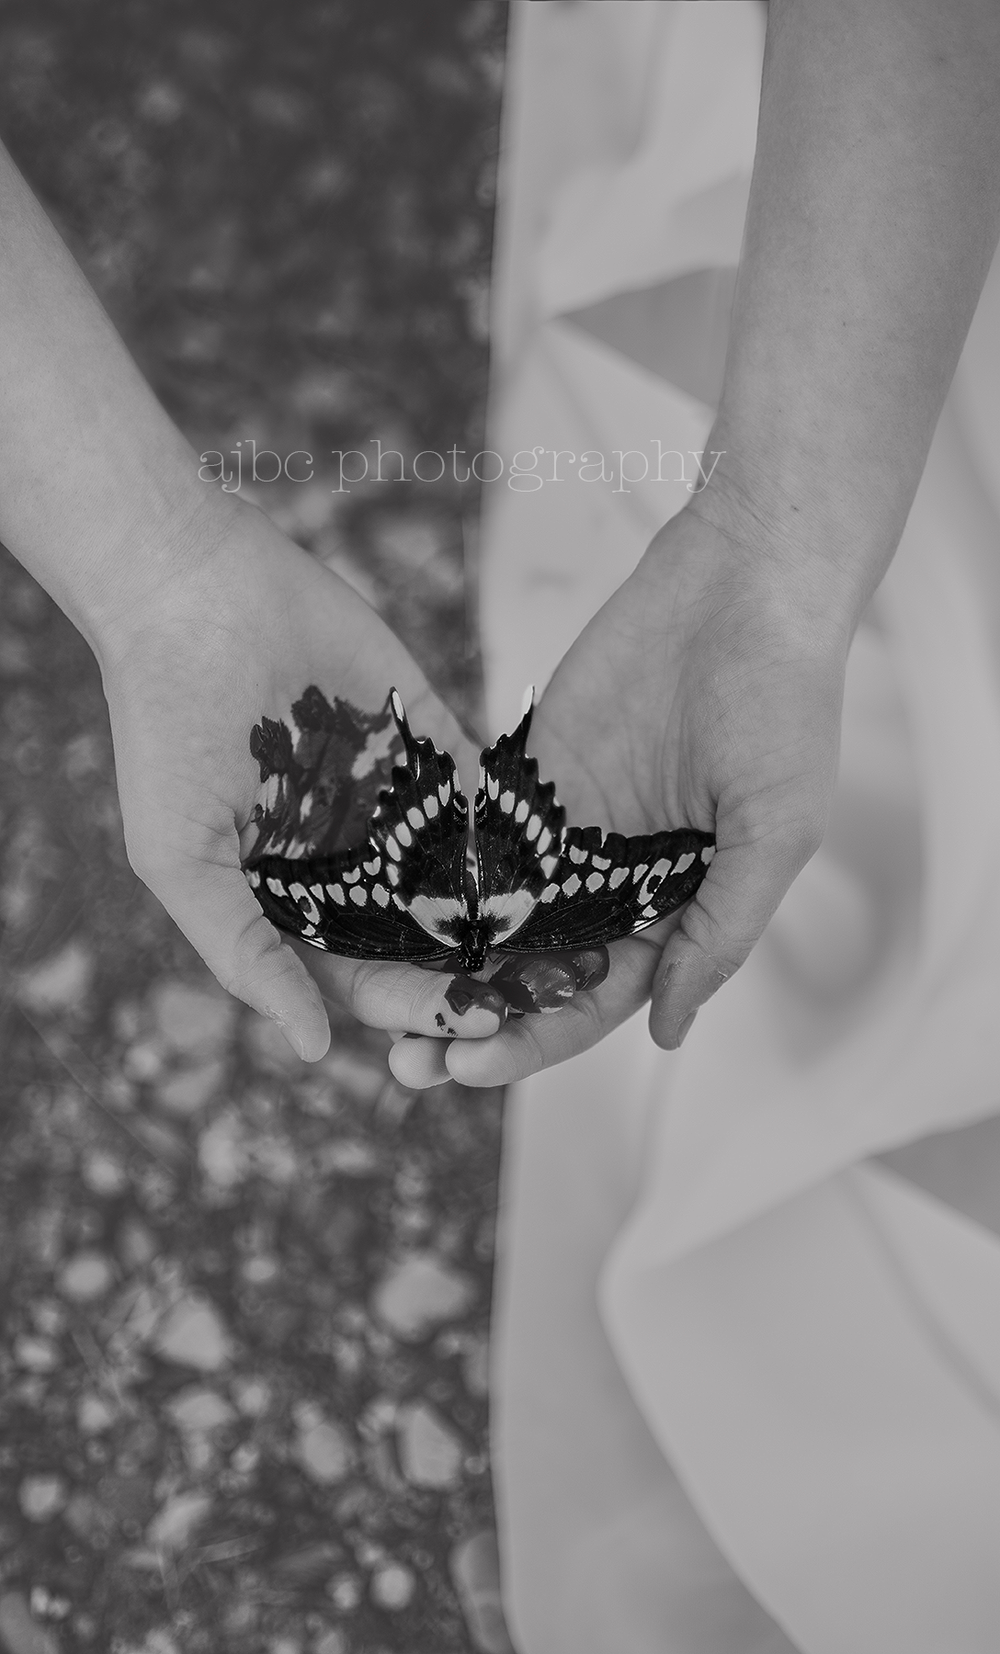 AJBCPhotography-artistic-porthuron-photographer-michigan-blackandwhite-butterfly